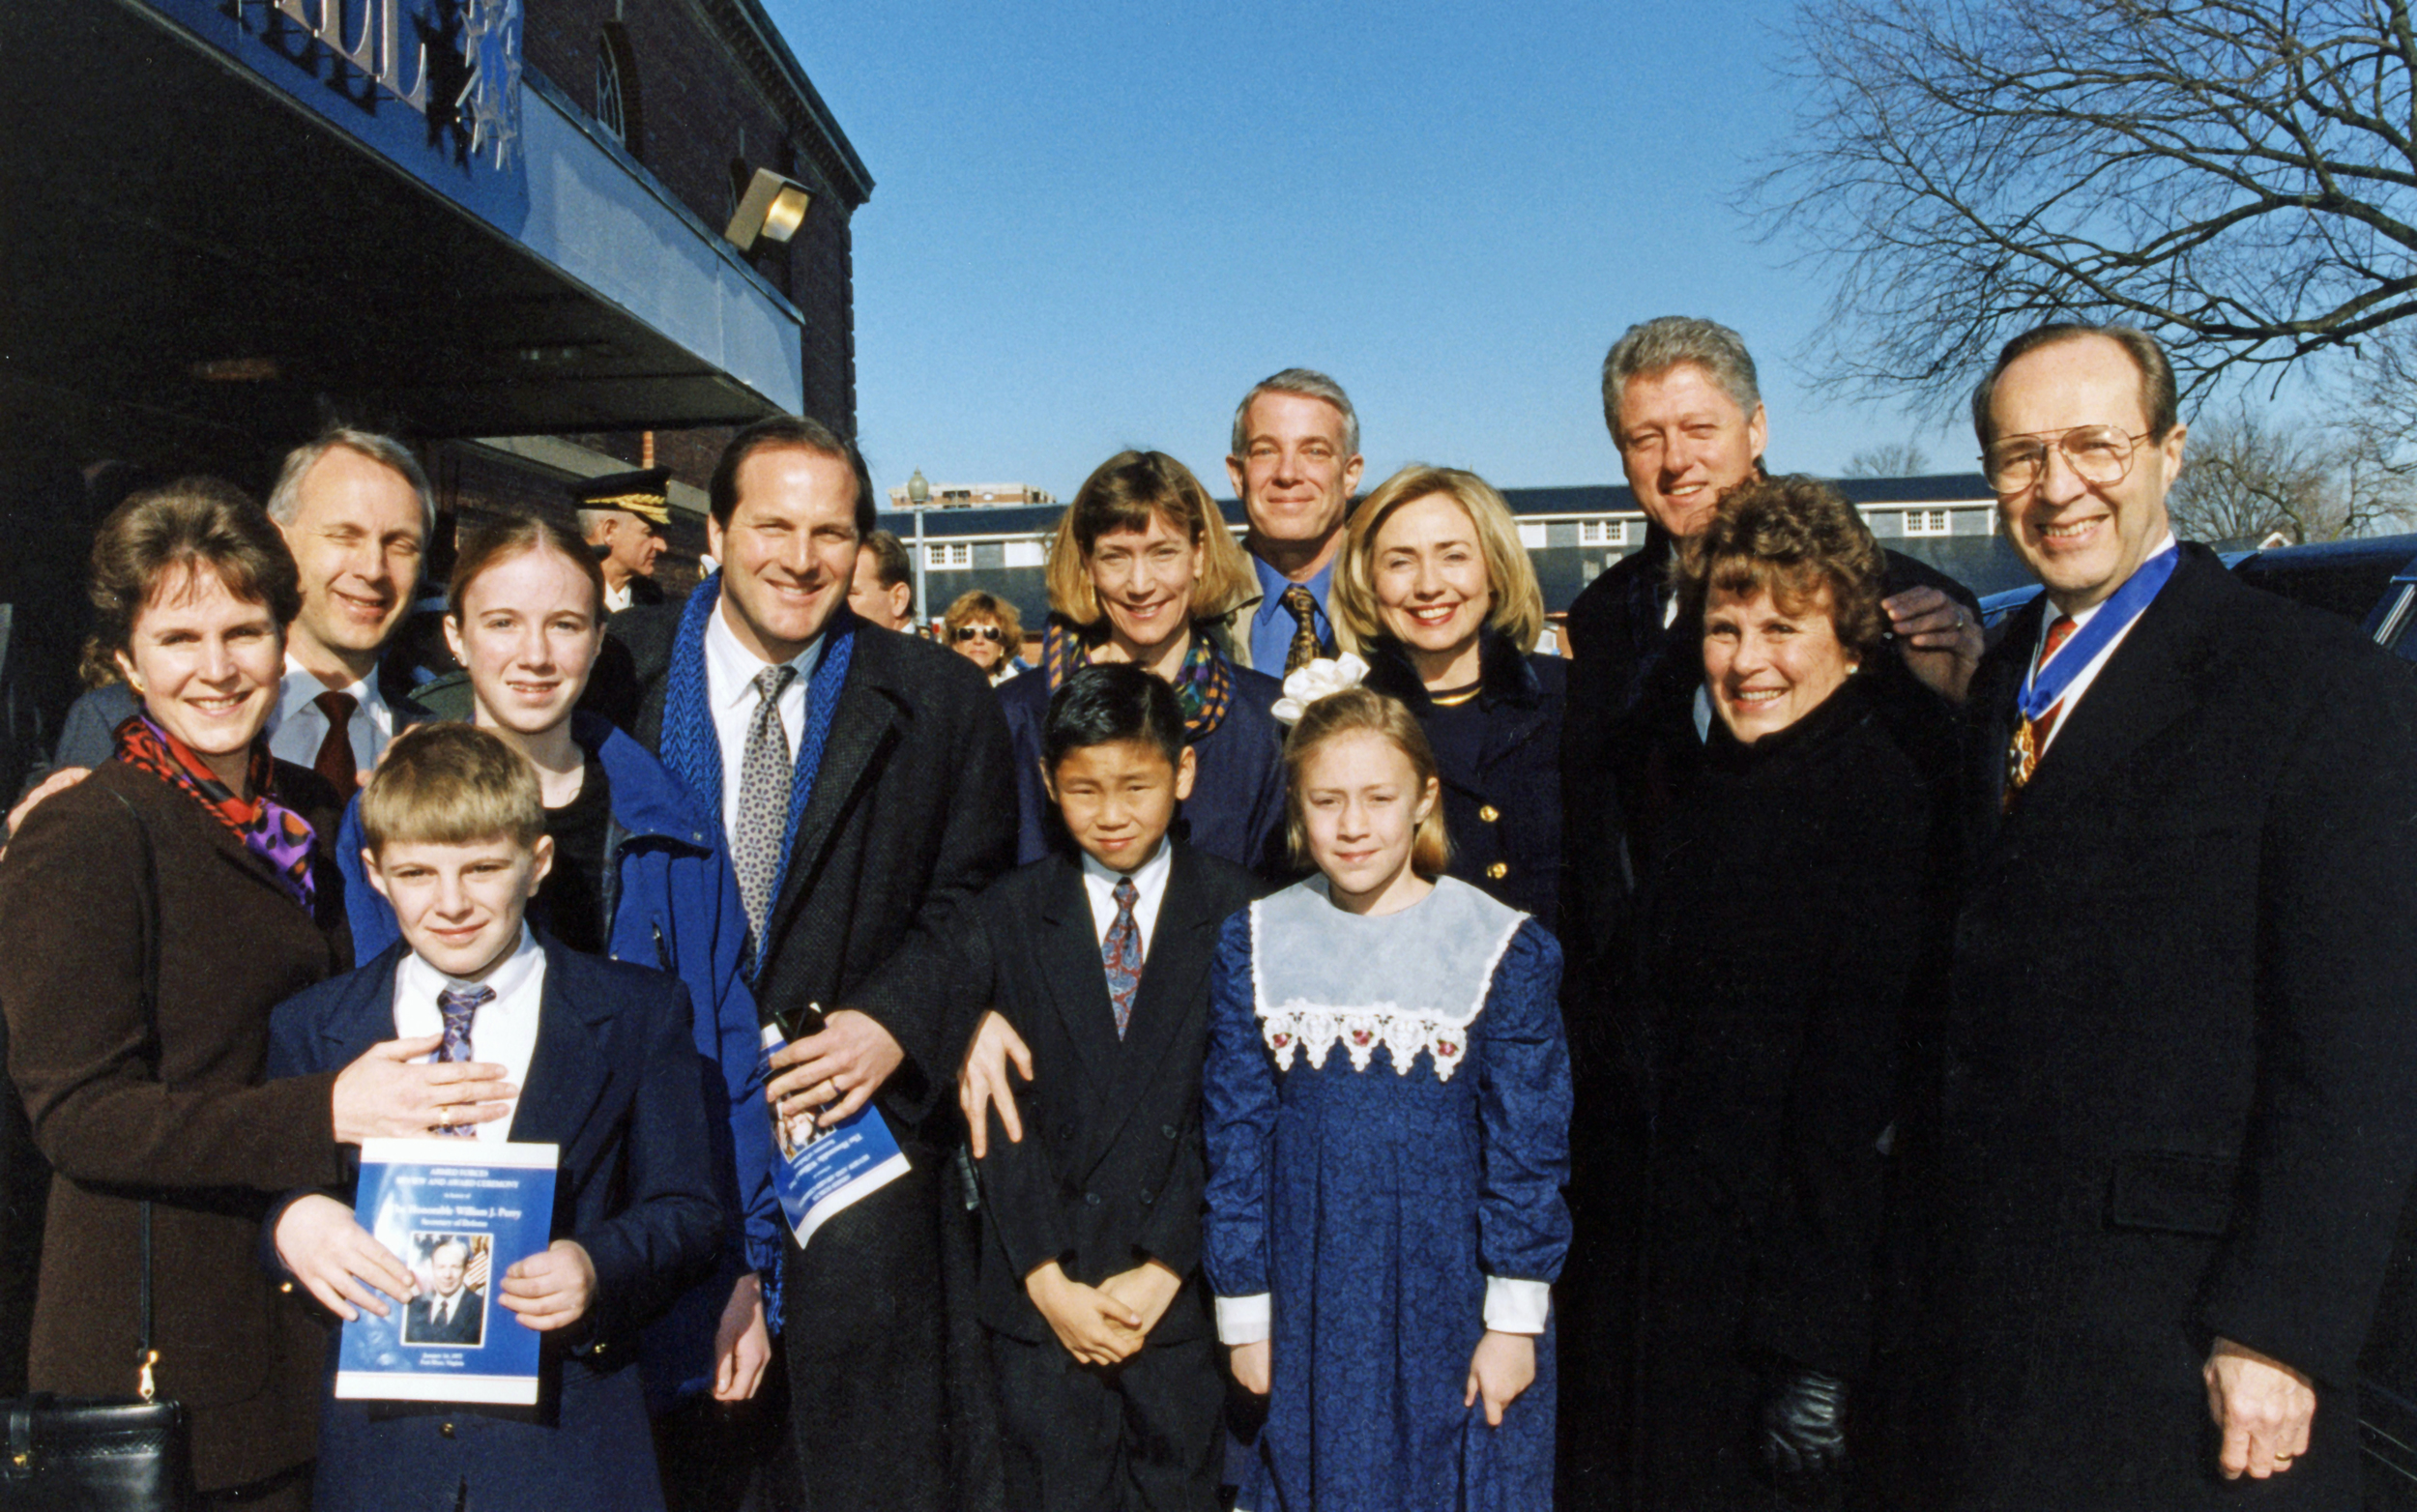 Perry family with President and Mrs. Clinton after Perry's farewell ceremony, January 1997.